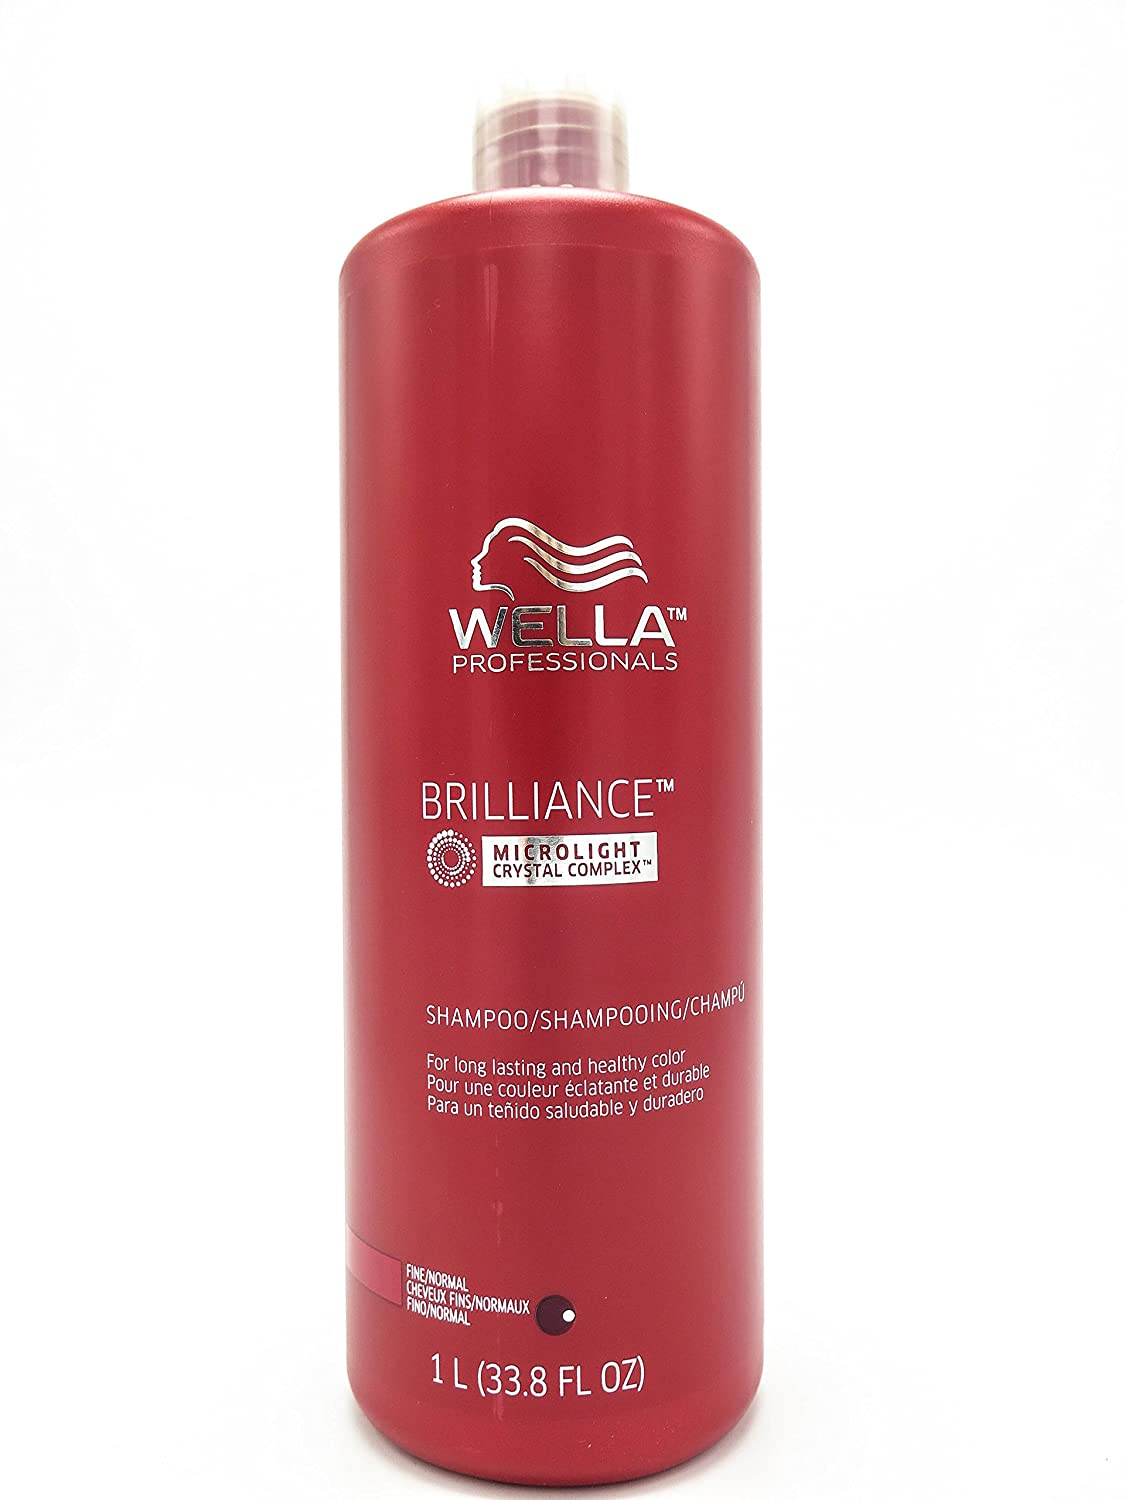 Wella Brilliance Shampoo for Fine To Normal Colored Hair for Unisex, 33.8 Ounce 070018008749